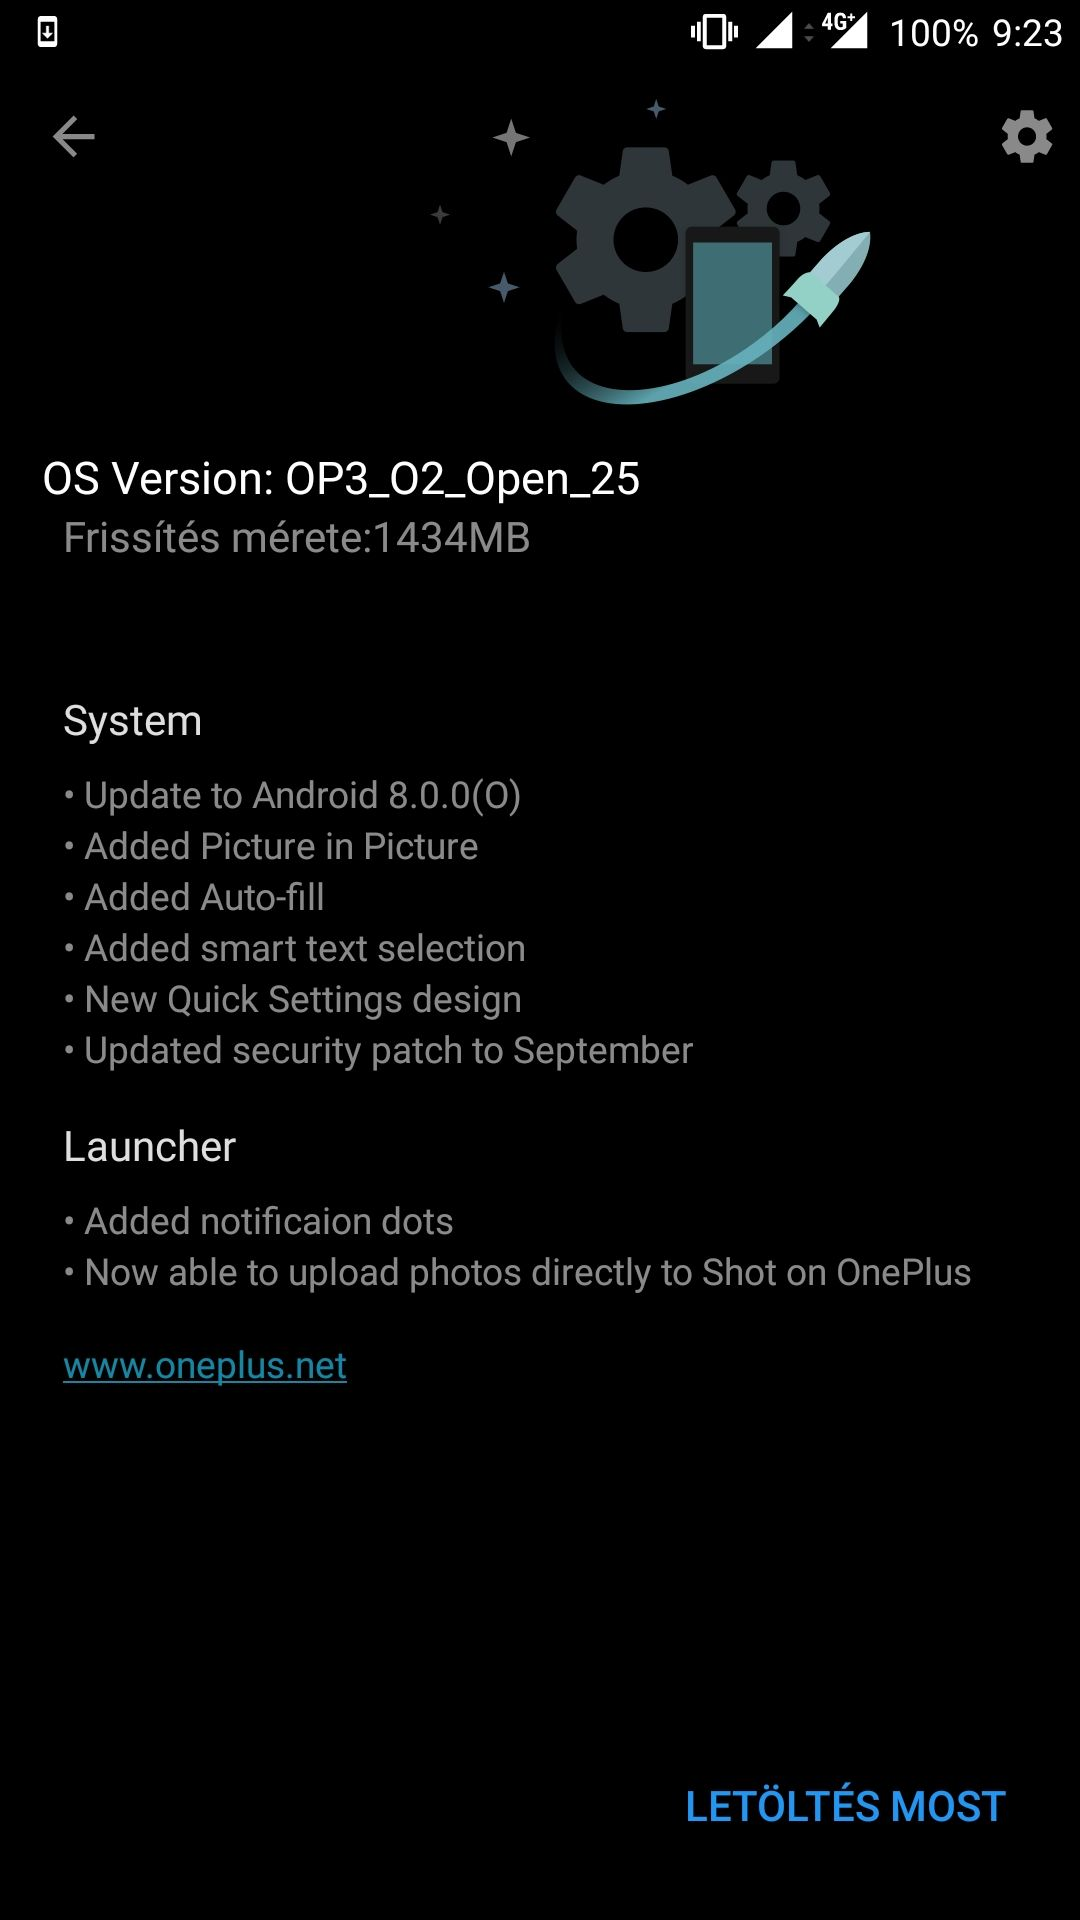 OxygenOS Open Beta 25 for the OnePlus 3 and 16 for the